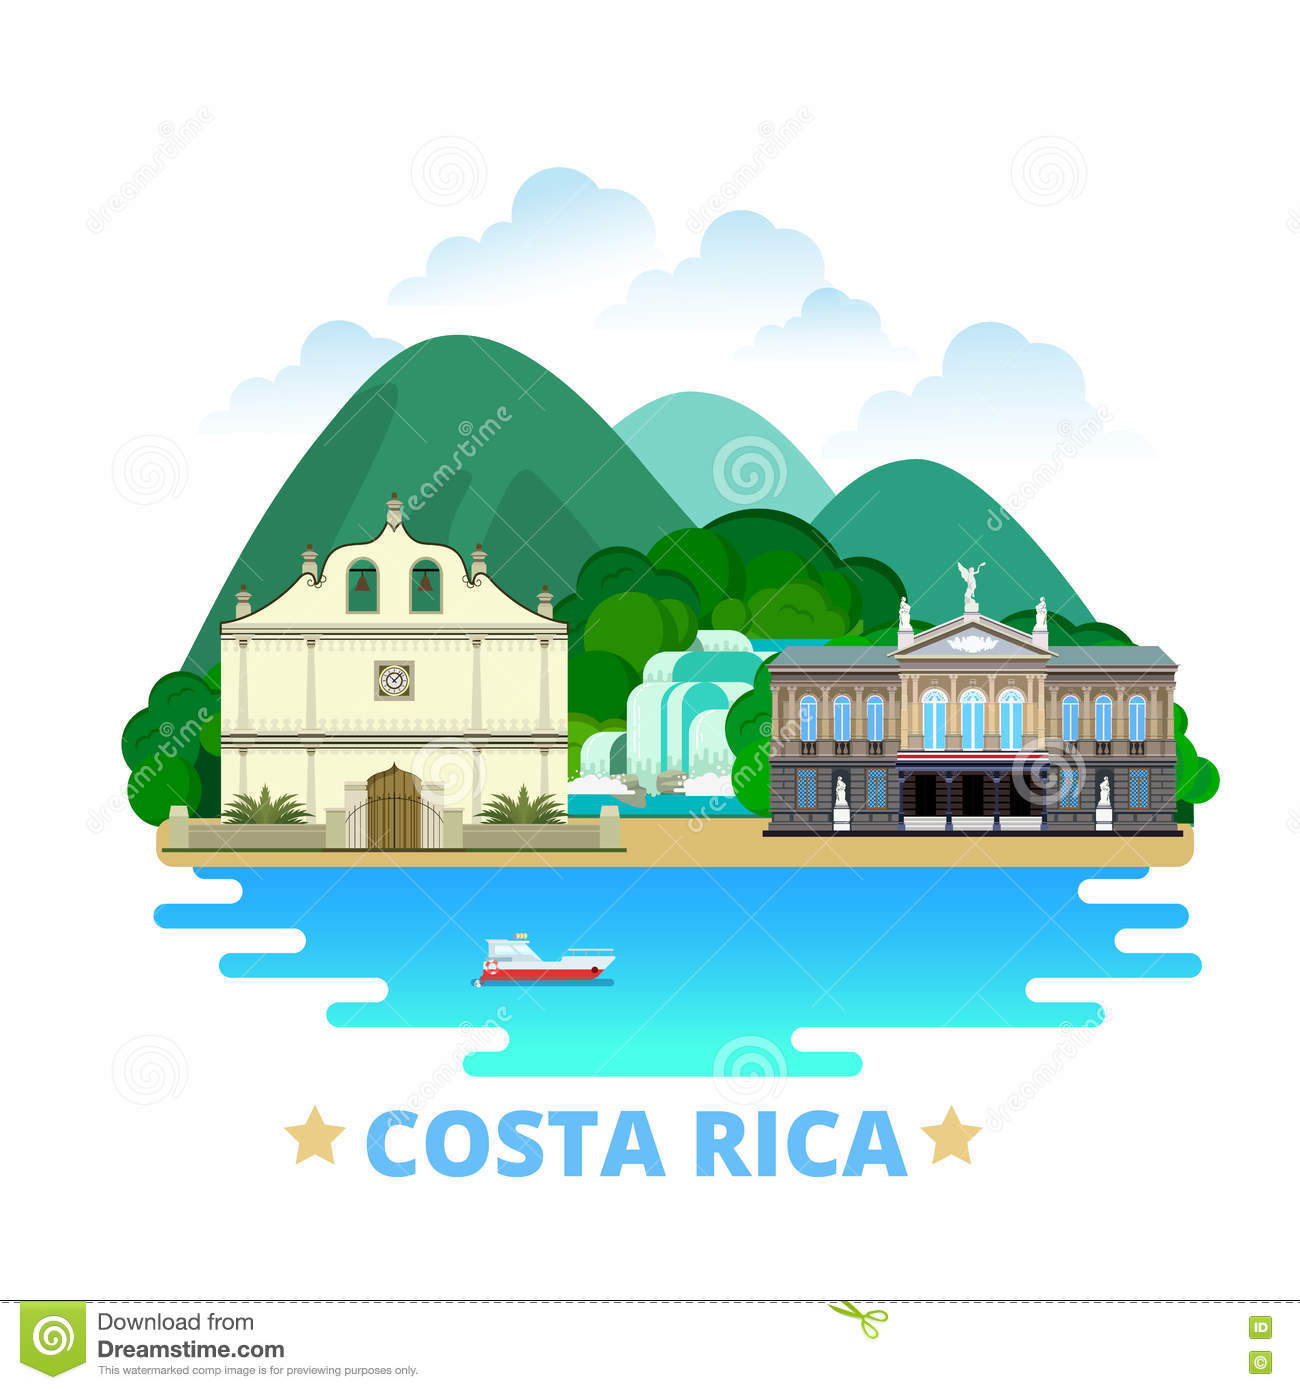 Costa Rica Mobile Web Design Images Unavailable : costa rica country design template flat cartoon st style historic sight showplace web vector illustration world vacation travel 73371592 from www.litocencoa.com size 1300 x 1390 jpeg 125kB